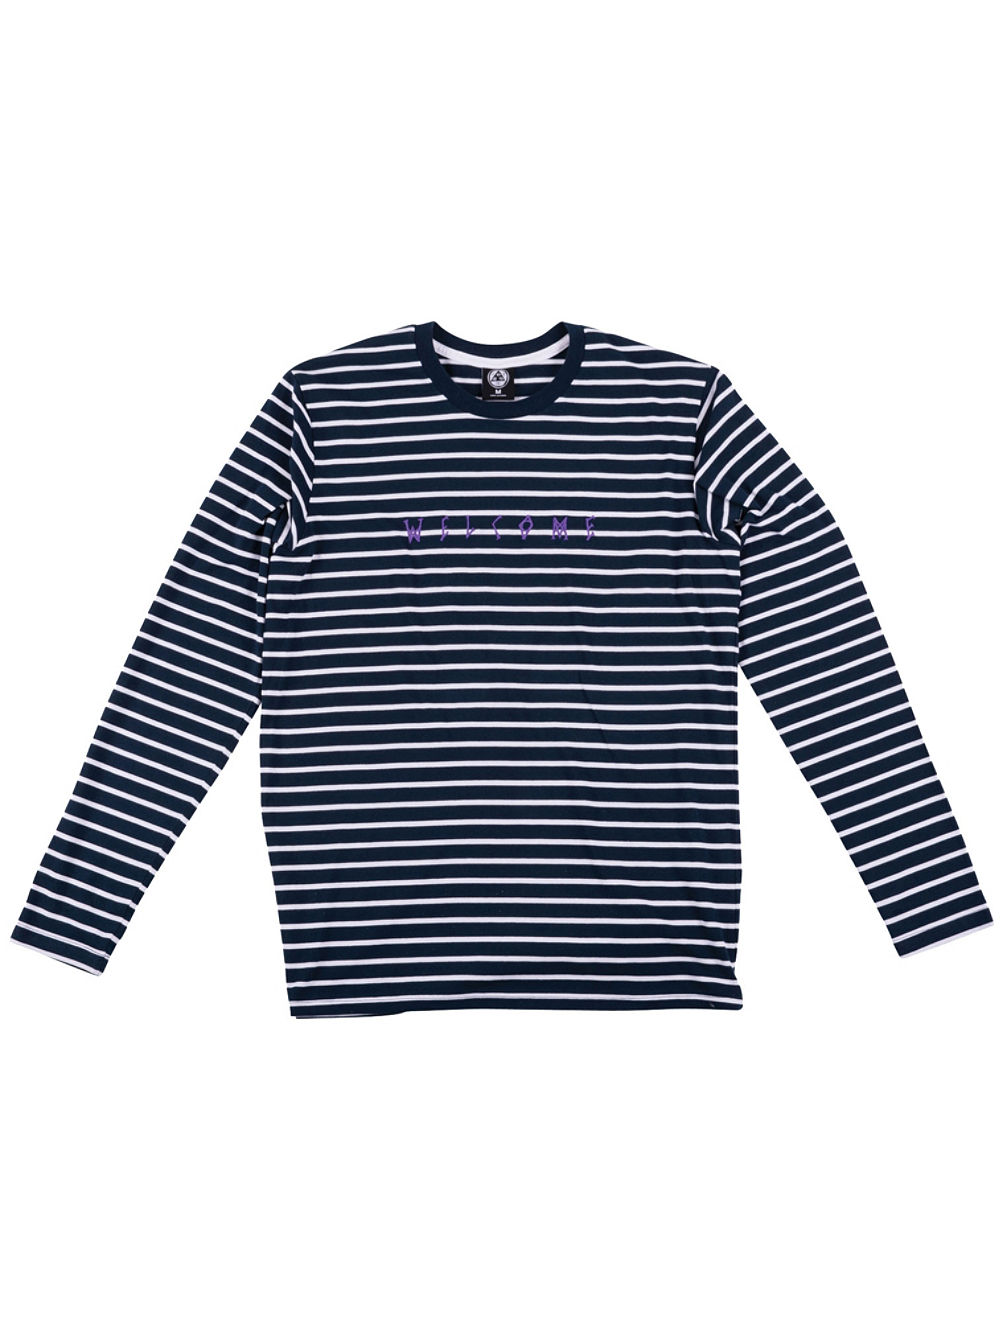 Scrawl Embroidered Striped T-Shirt LS